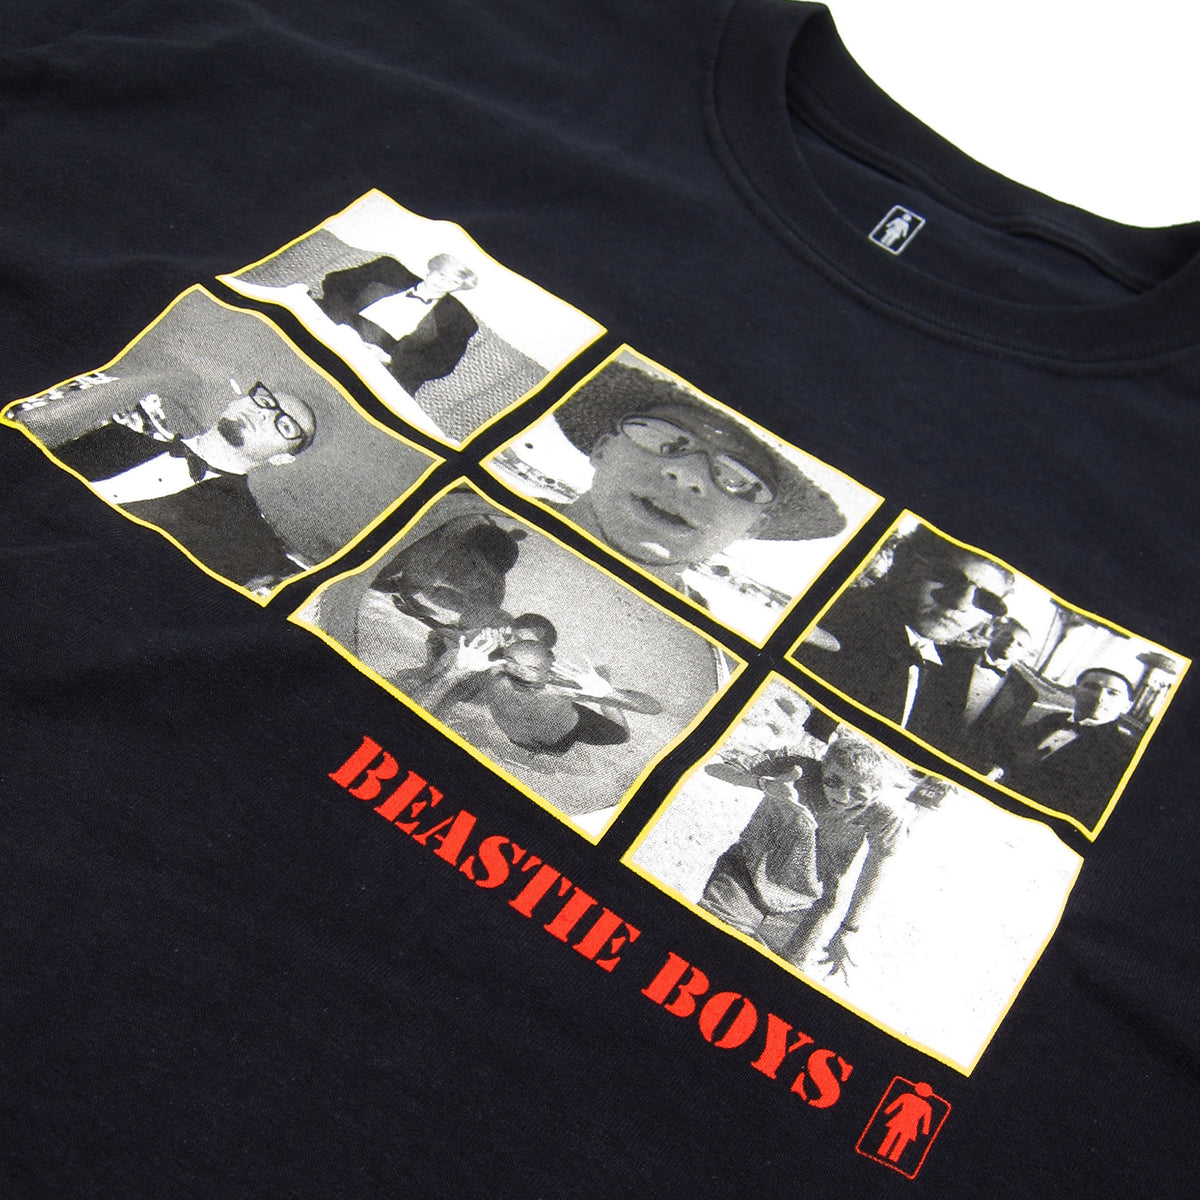 Beastie Boys: Sure Shot Longsleeve Shirt By Girl Skateboards / Spike Jonze - Black